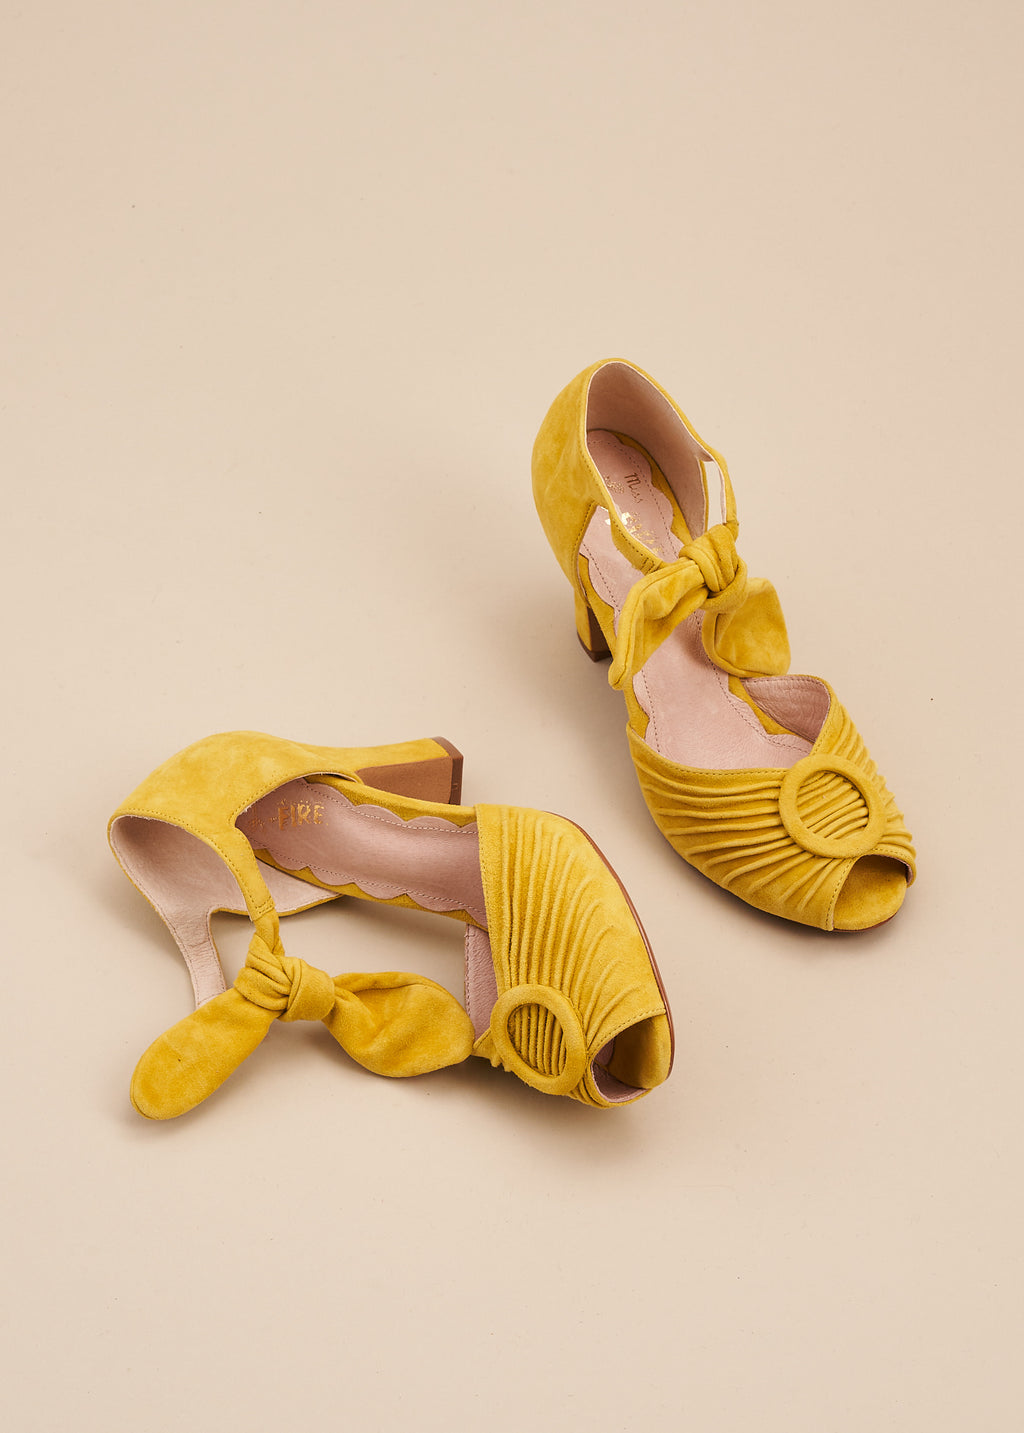 Loretta in sunny yellow suede by Miss L Fire is a vintage inspired peep toe sandal with 8cm heel and soft ankle tie straps. Vamp features delicate pleating and covered buckle detail.